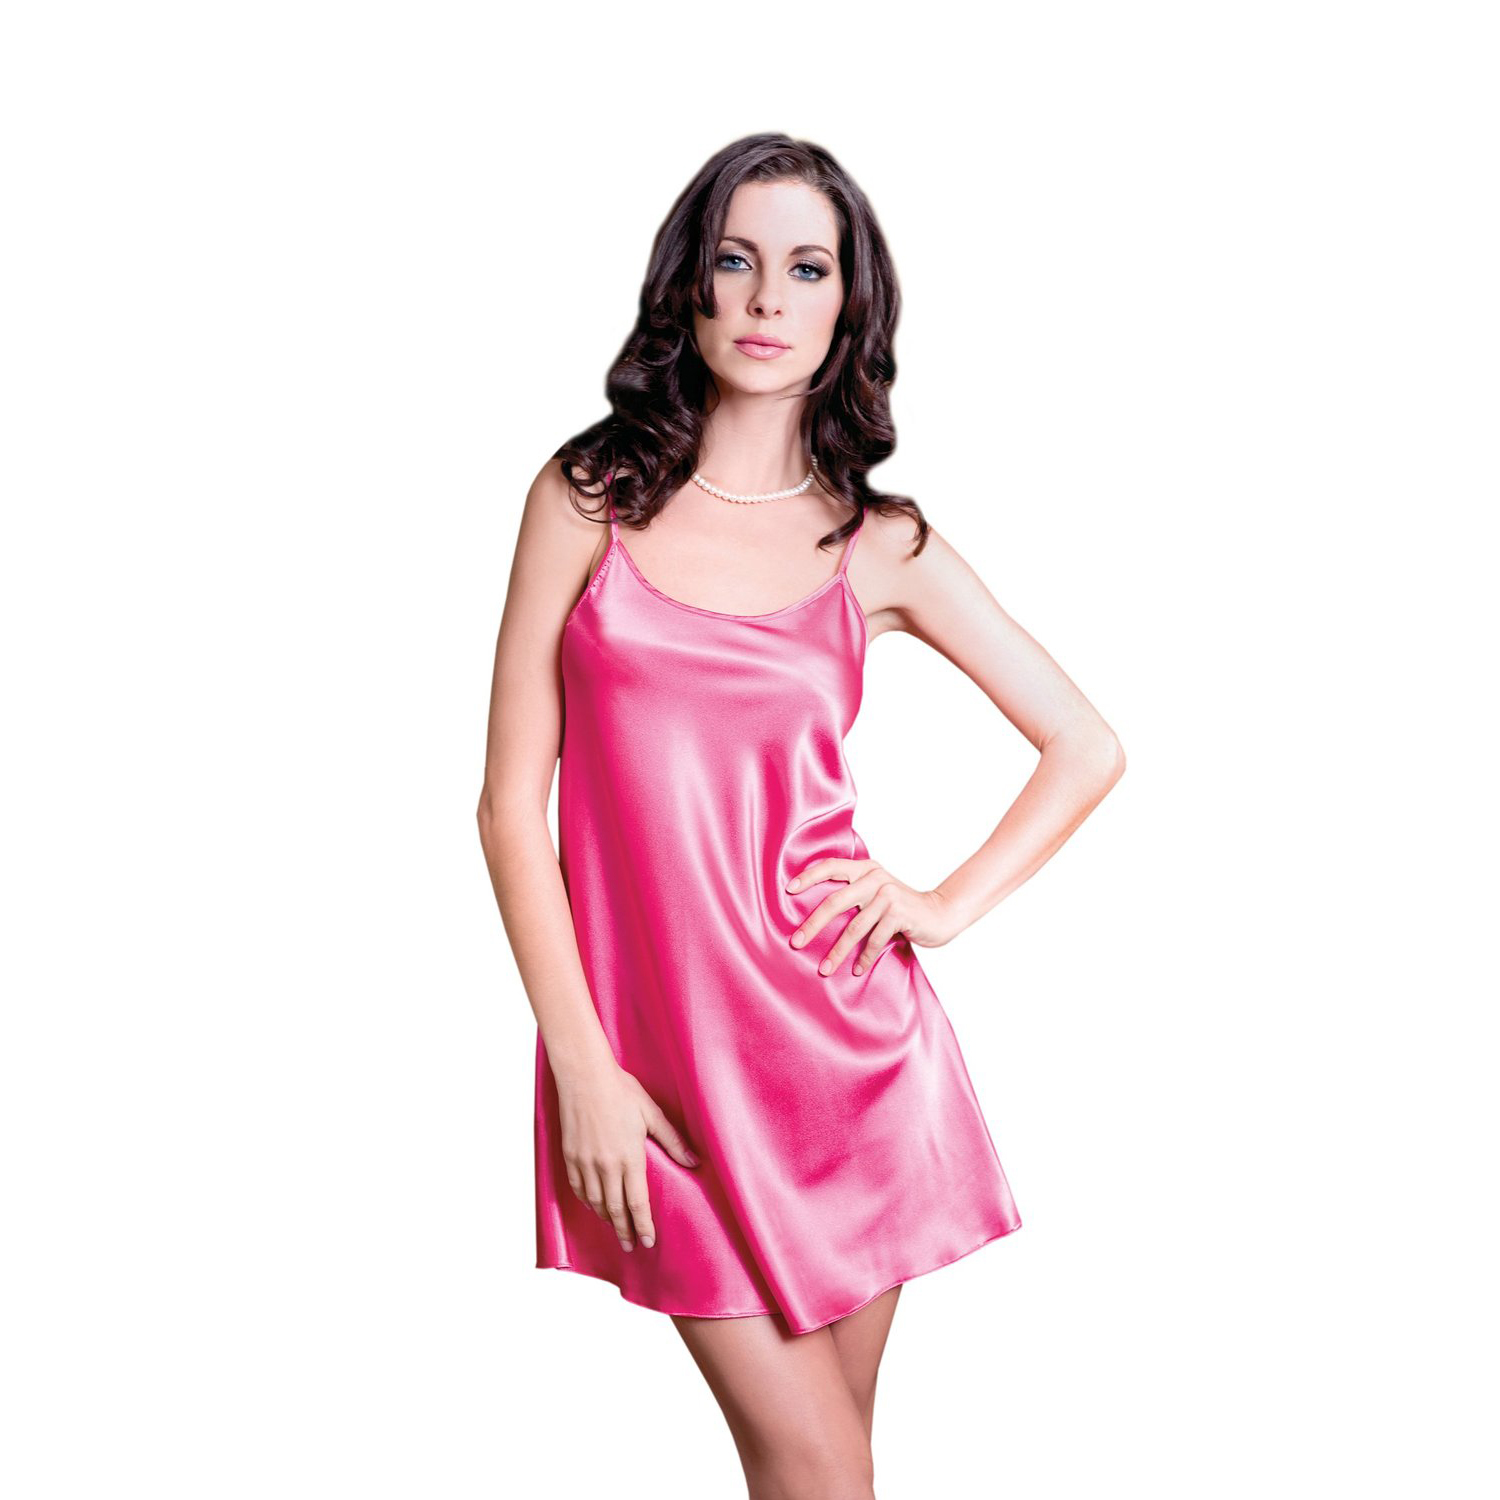 At Spicy Lingerie, our lingerie looks fabulous on all shapes and sizes, especially with our 15,+ styles of lingerie, costumes, clubwear, and more. With deeply discounted intimate apparel, buy lingerie online at Spicy Lingerie, the premiere destination for the modern and alluring woman on a budget.